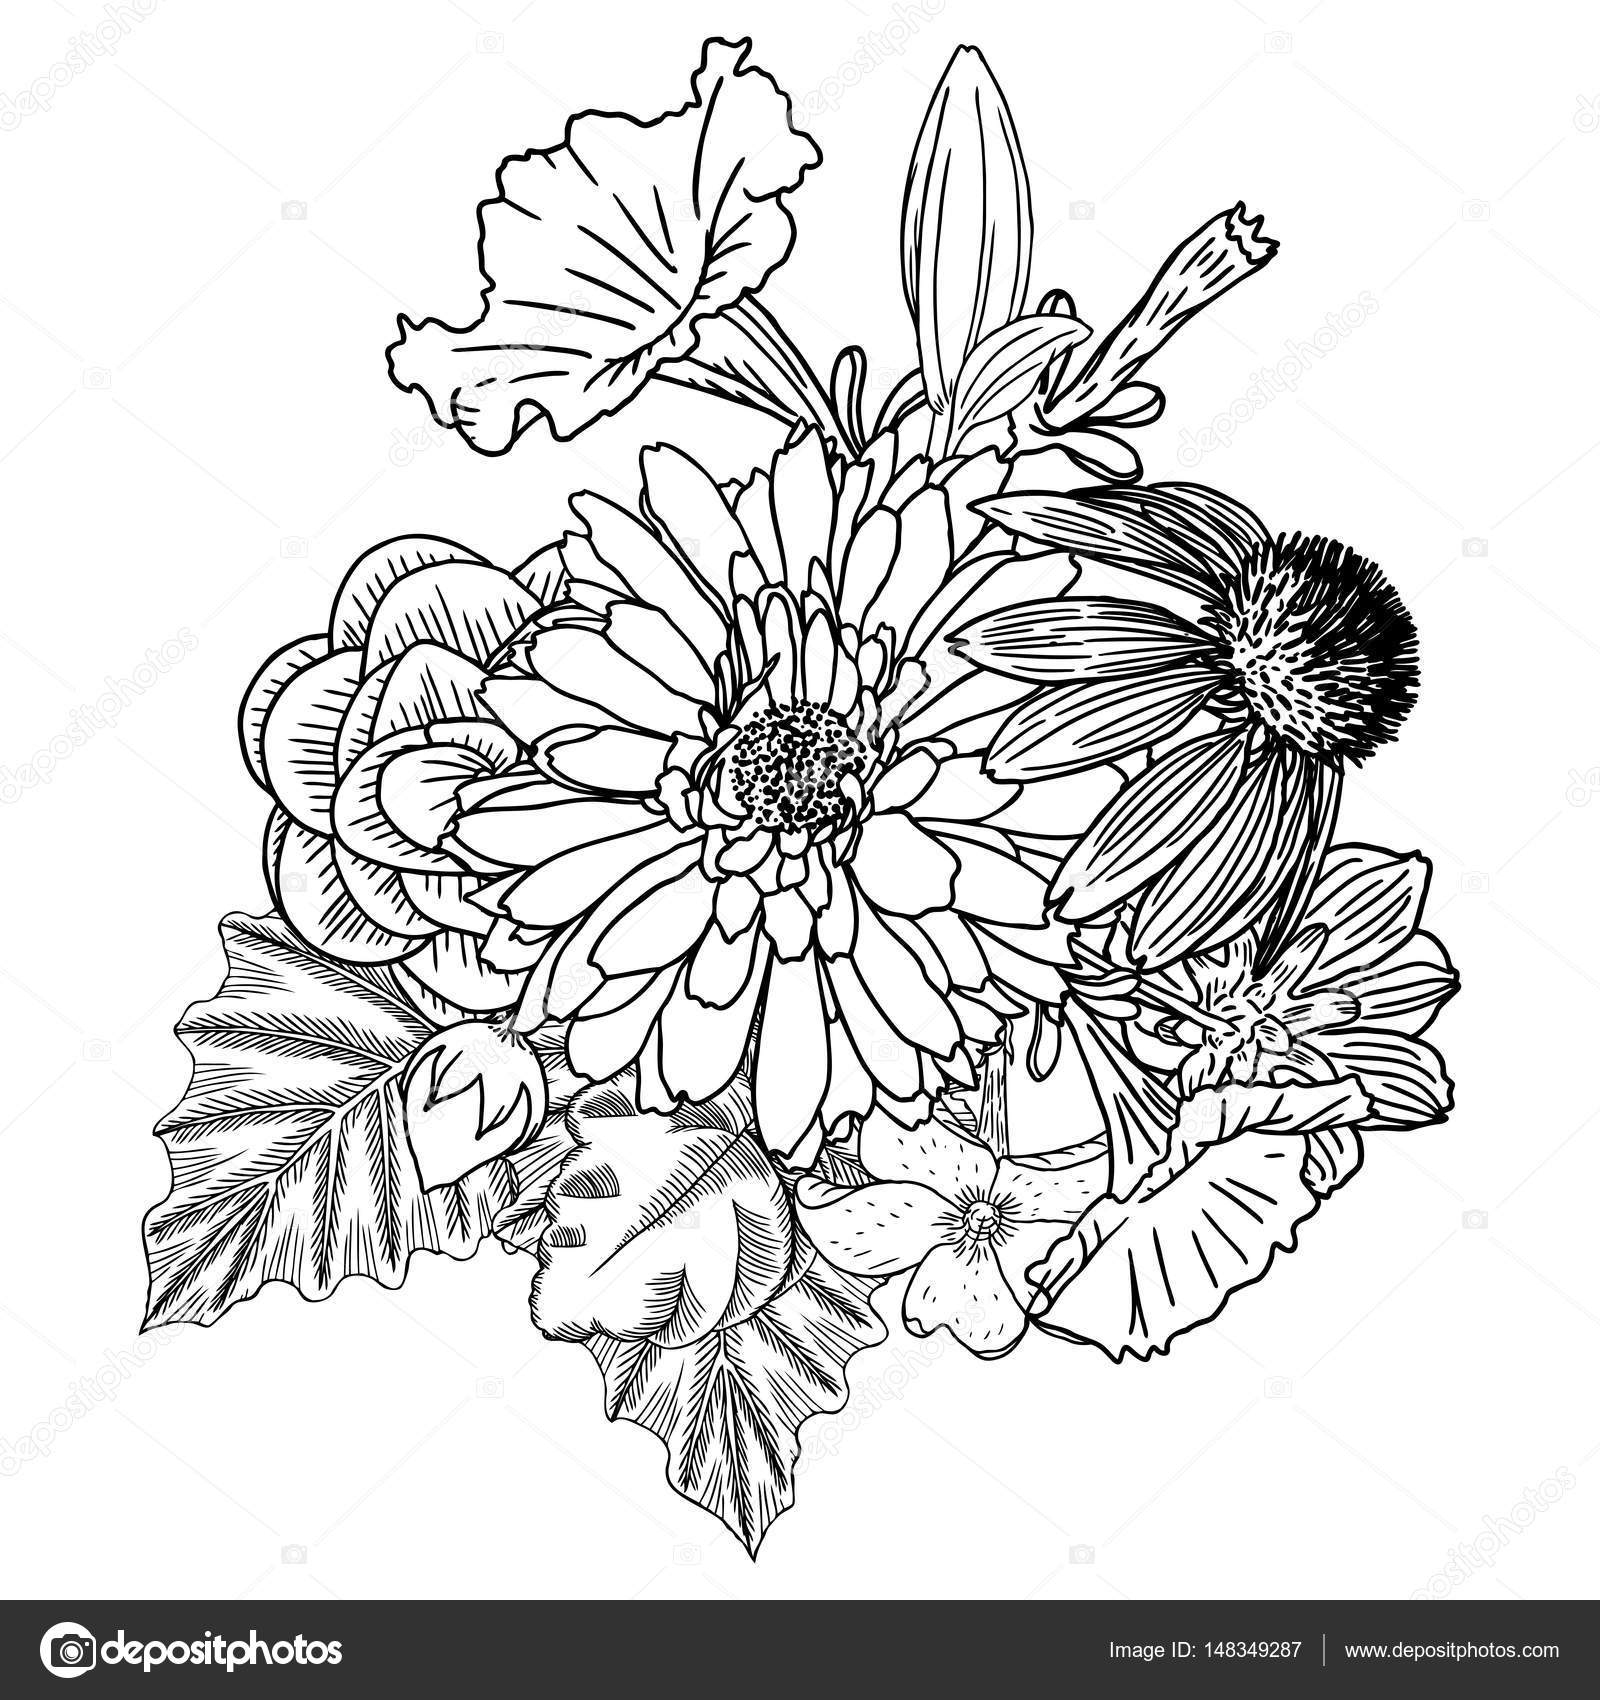 Bouquet of different hand drawn flower stock vector goldenshrimp flowers bouquet of different hand drawn flowers vintage black white and isolated can be used as invitation greeting card print vector mightylinksfo